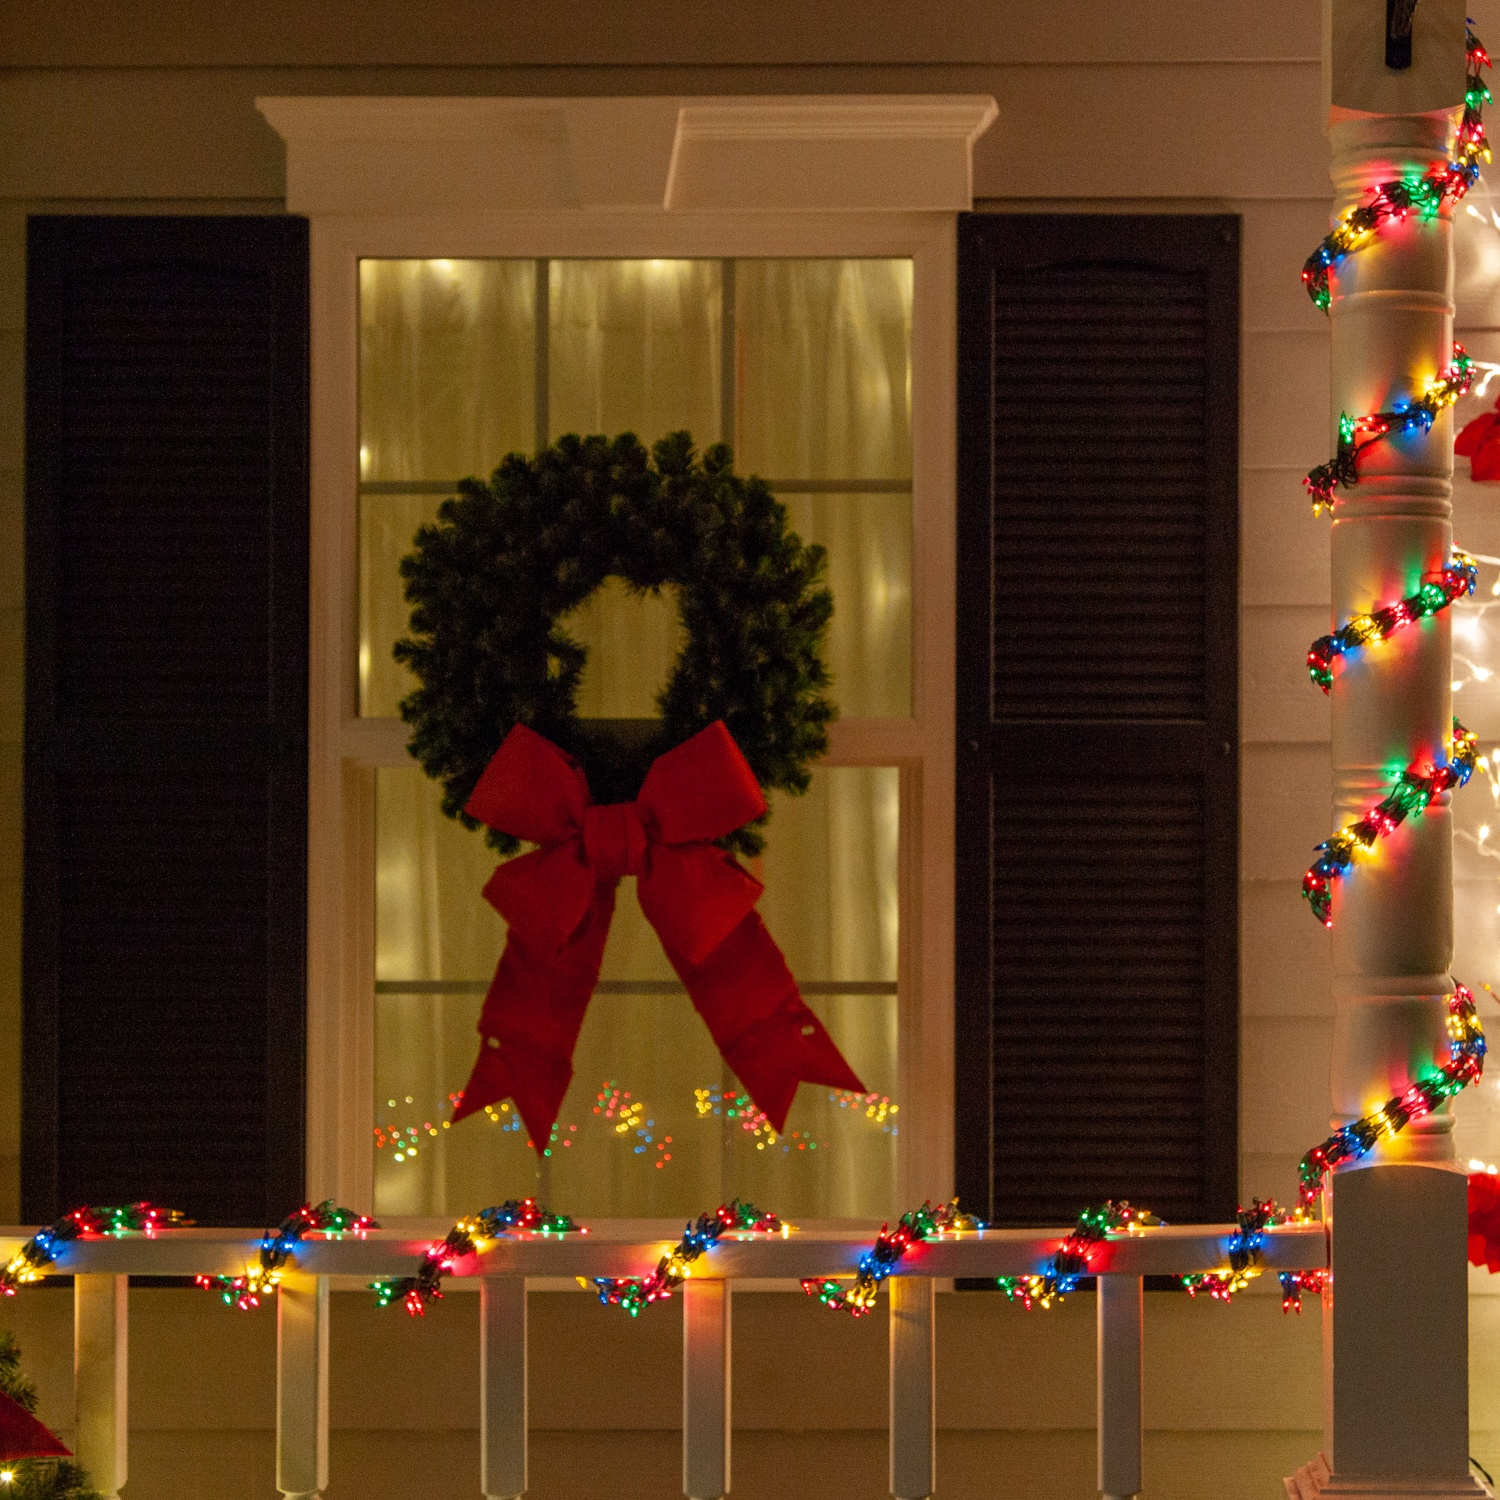 Multicolor Garland Lights Wrapped Around Porch Railings